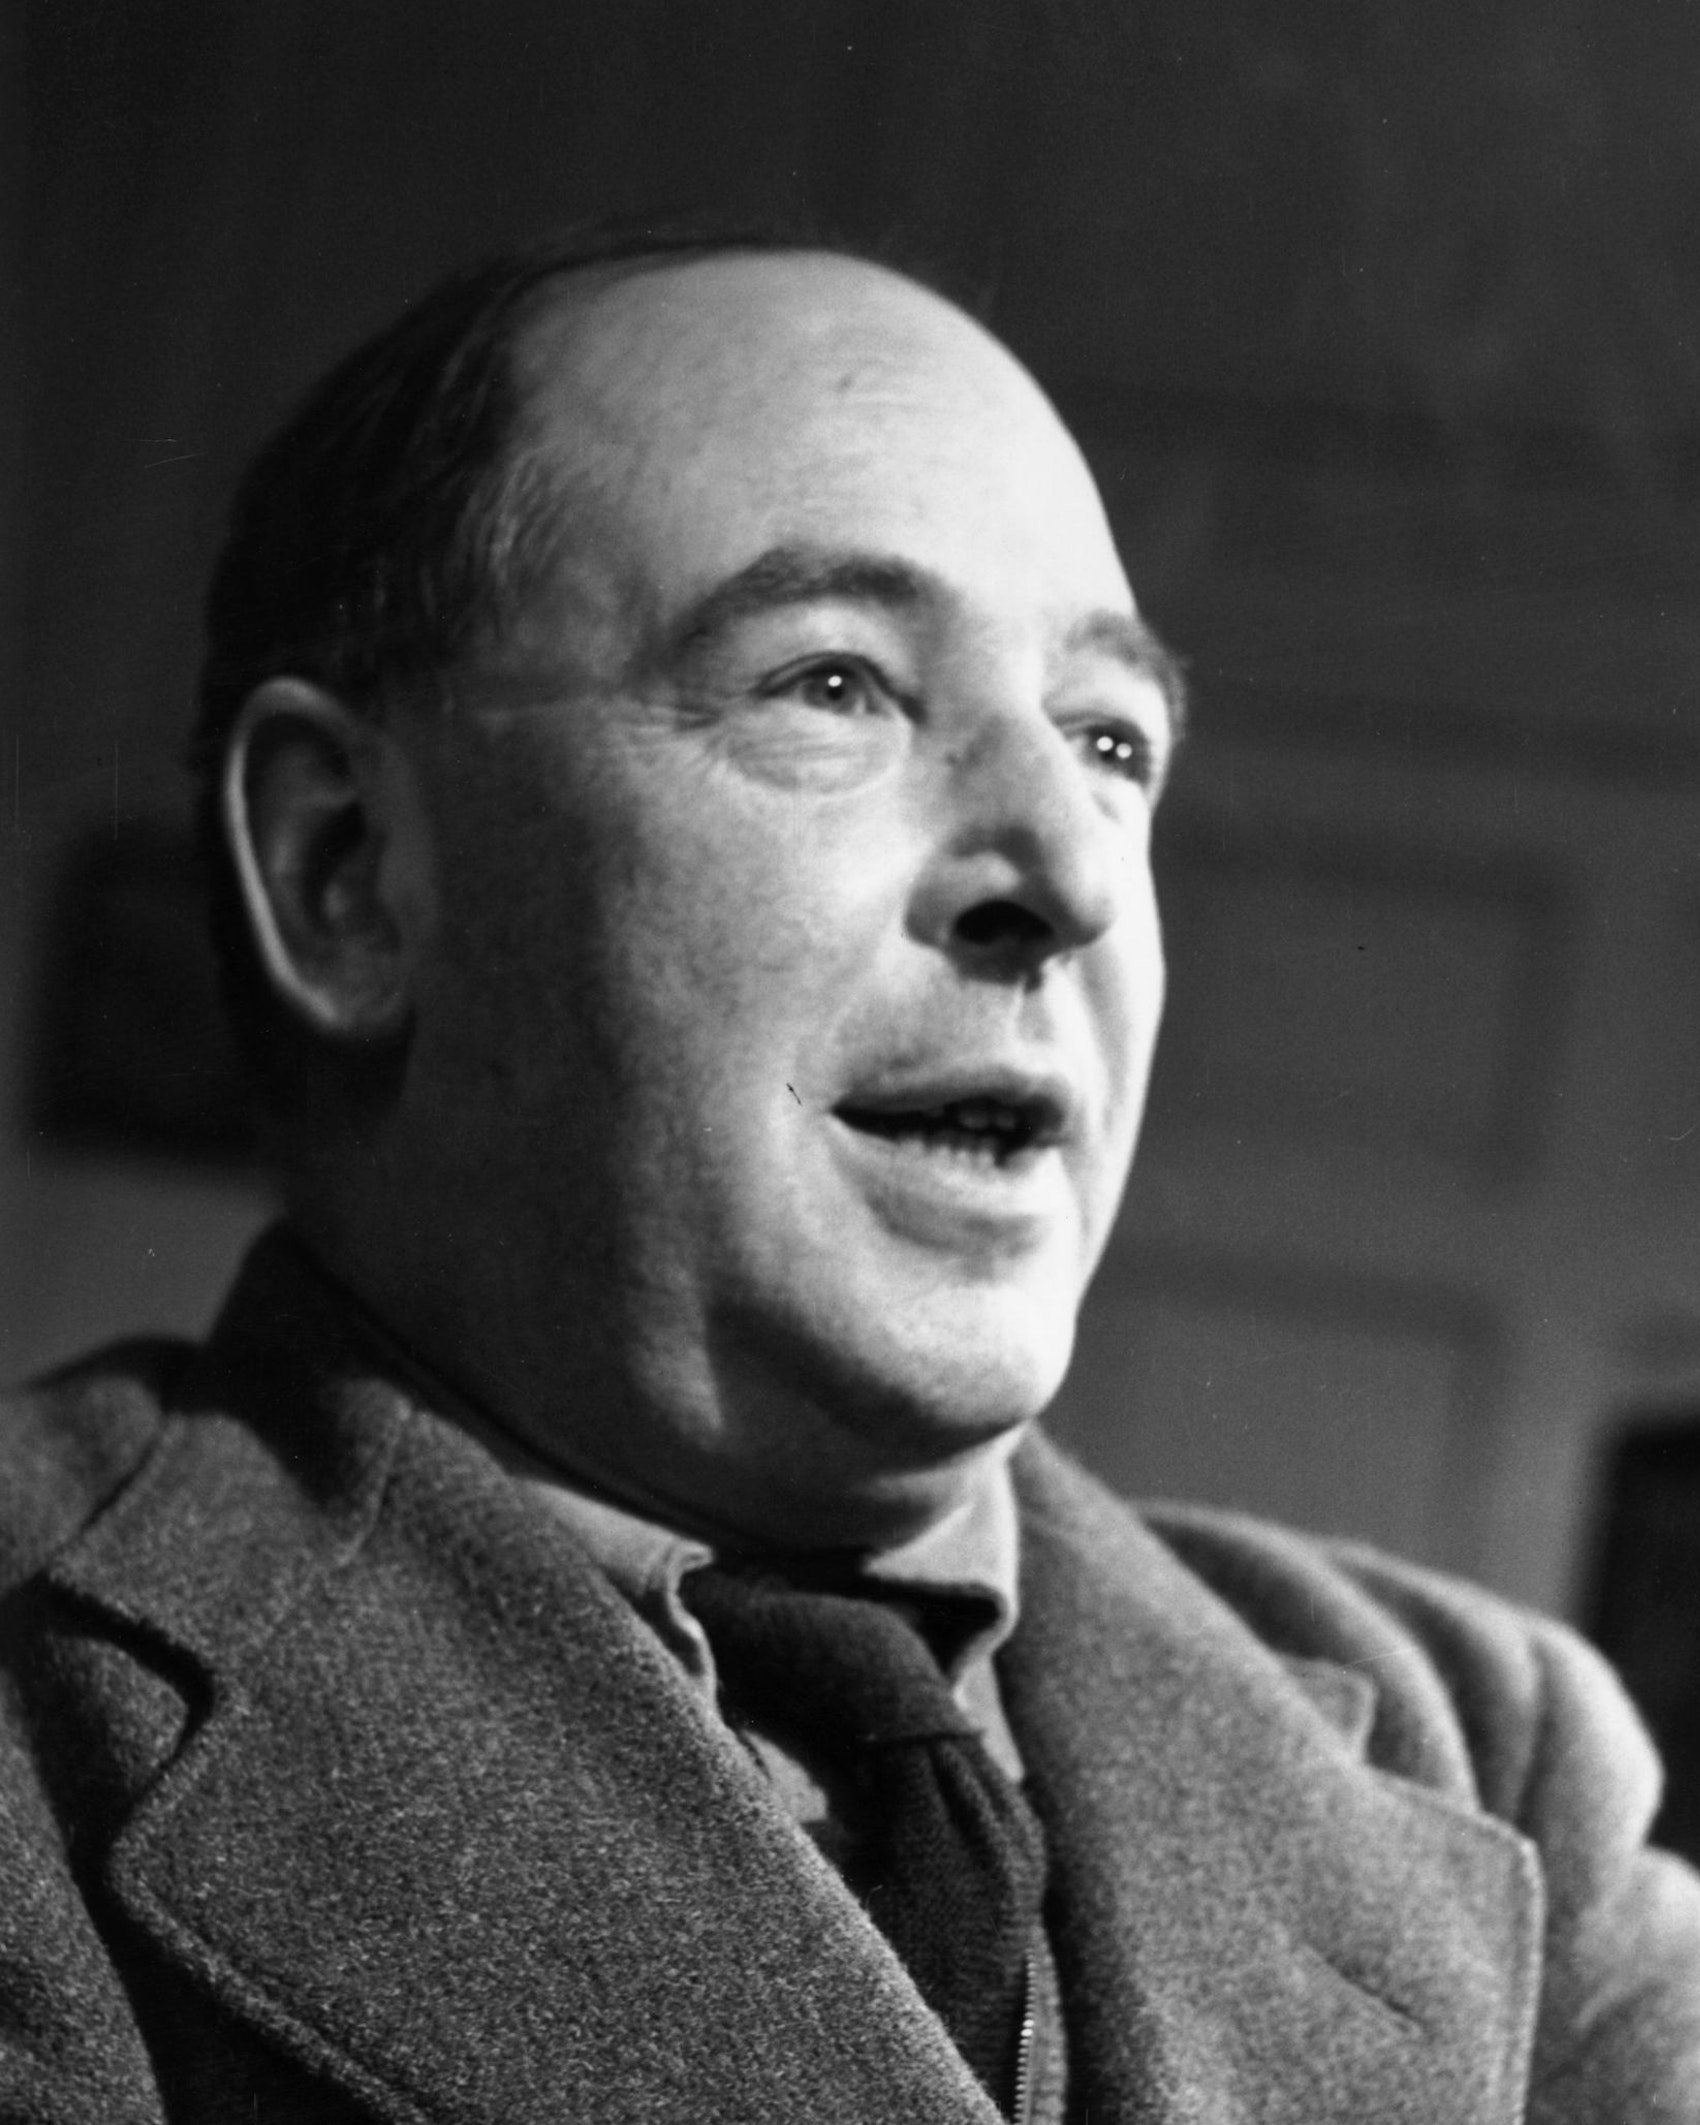 25th November 1950: British writer C S Lewis (Clive Staples Lewis, 1898 - 1963), a Fellow and Tutor of Magdalen College, Oxford. Original Publication: Picture Post - 5159 - Eternal Oxford - pub. 1950 (Photo by John Chillingworth/Picture Post/Hulton Archive/Getty Images)